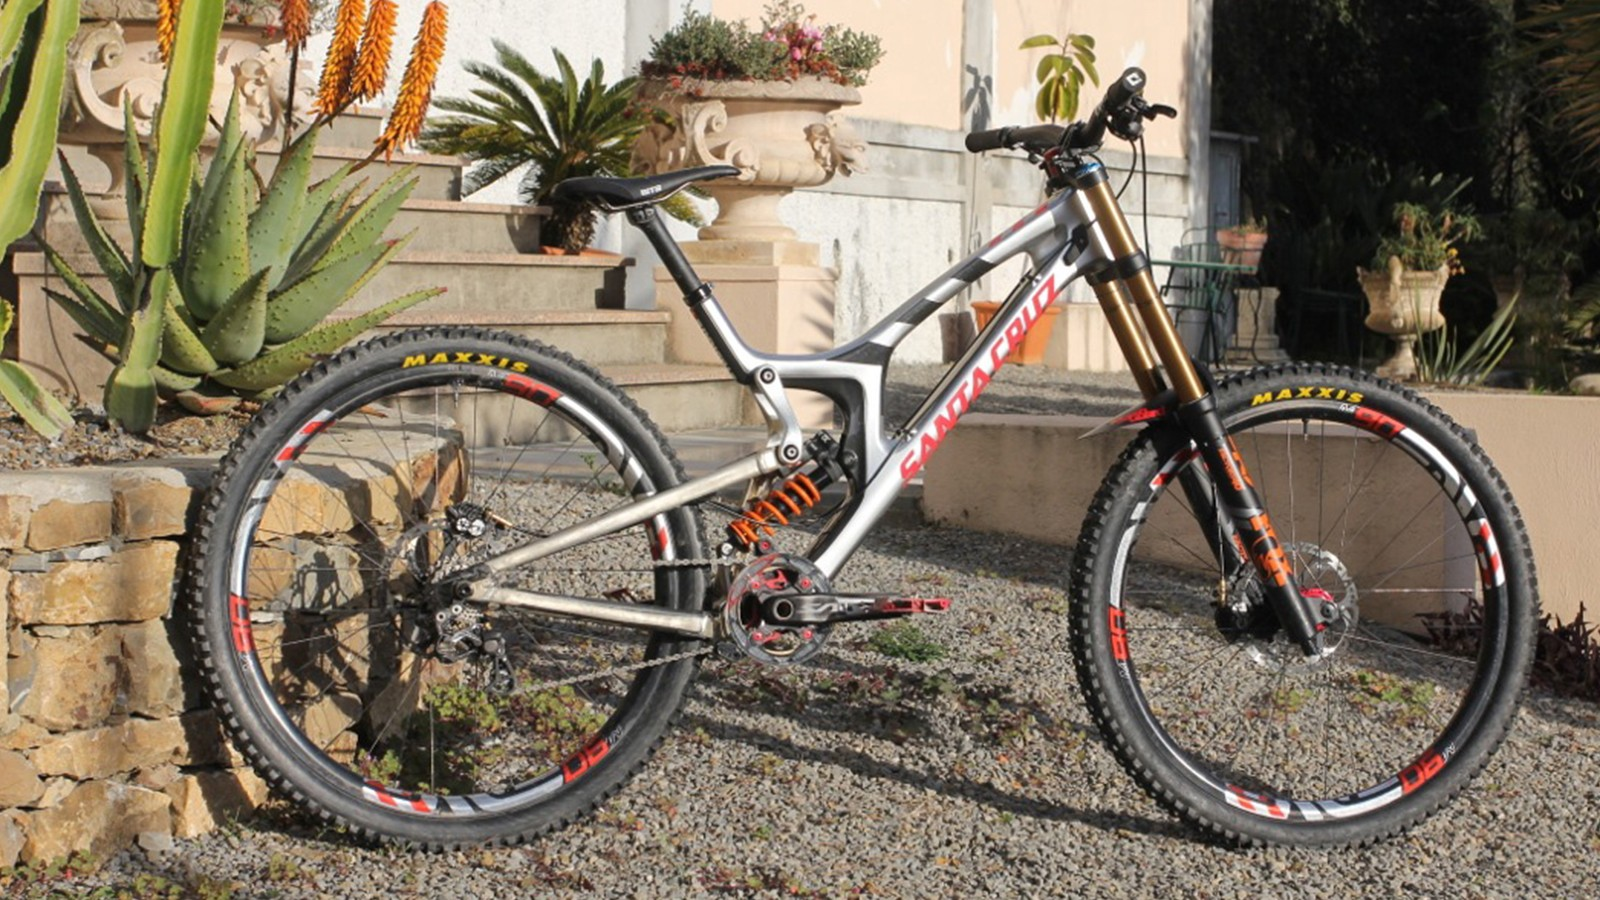 There's a 29er V10 and the Syndicate will be racing it this weekend at Lourdes